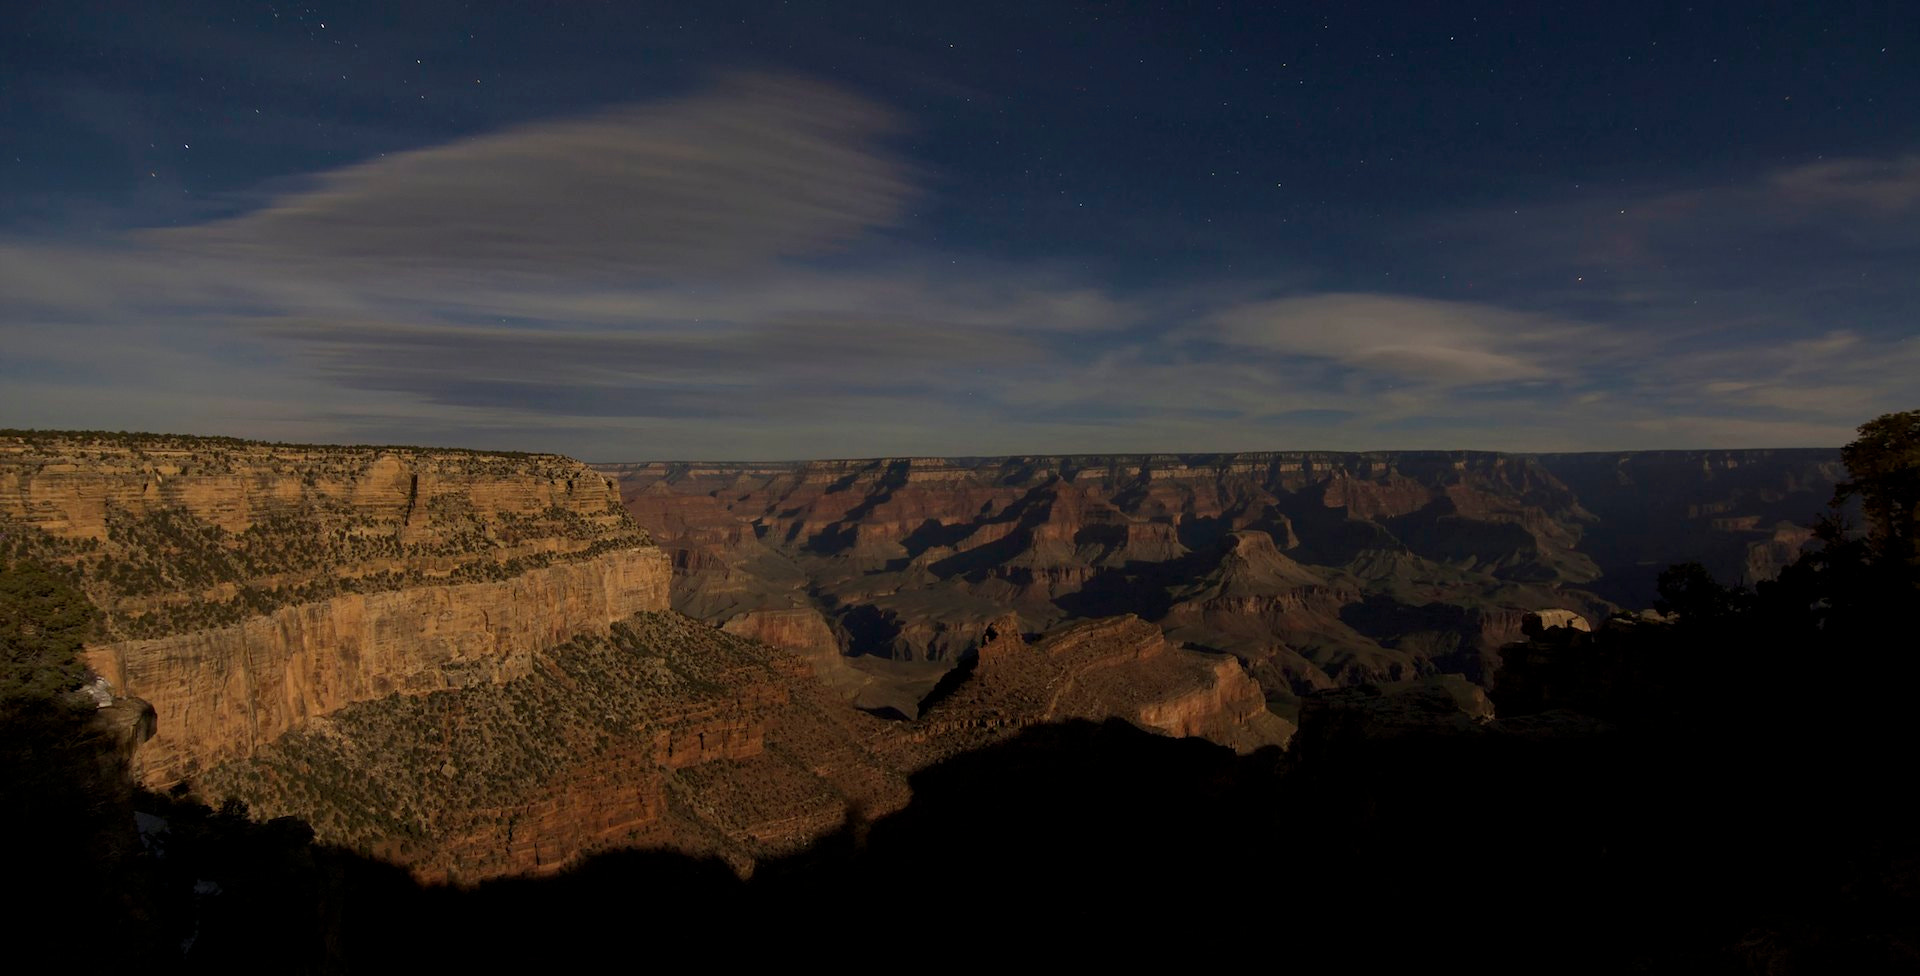 Photograph Nighttime from the Grand Canyon Village - Pano by Ron Kaplan on 500px